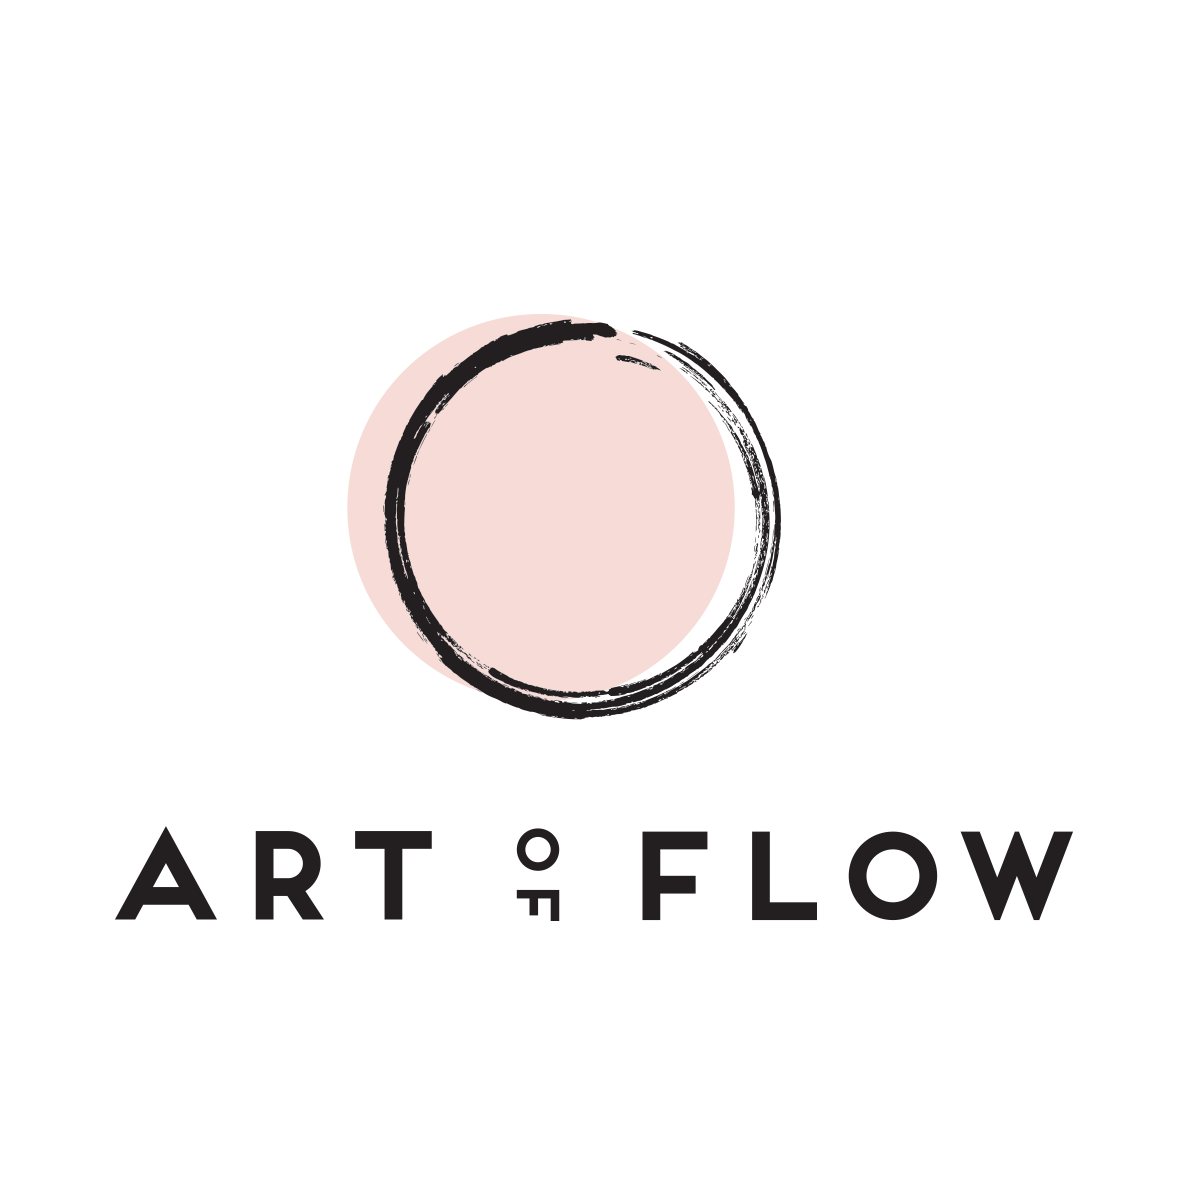 Art of Flow